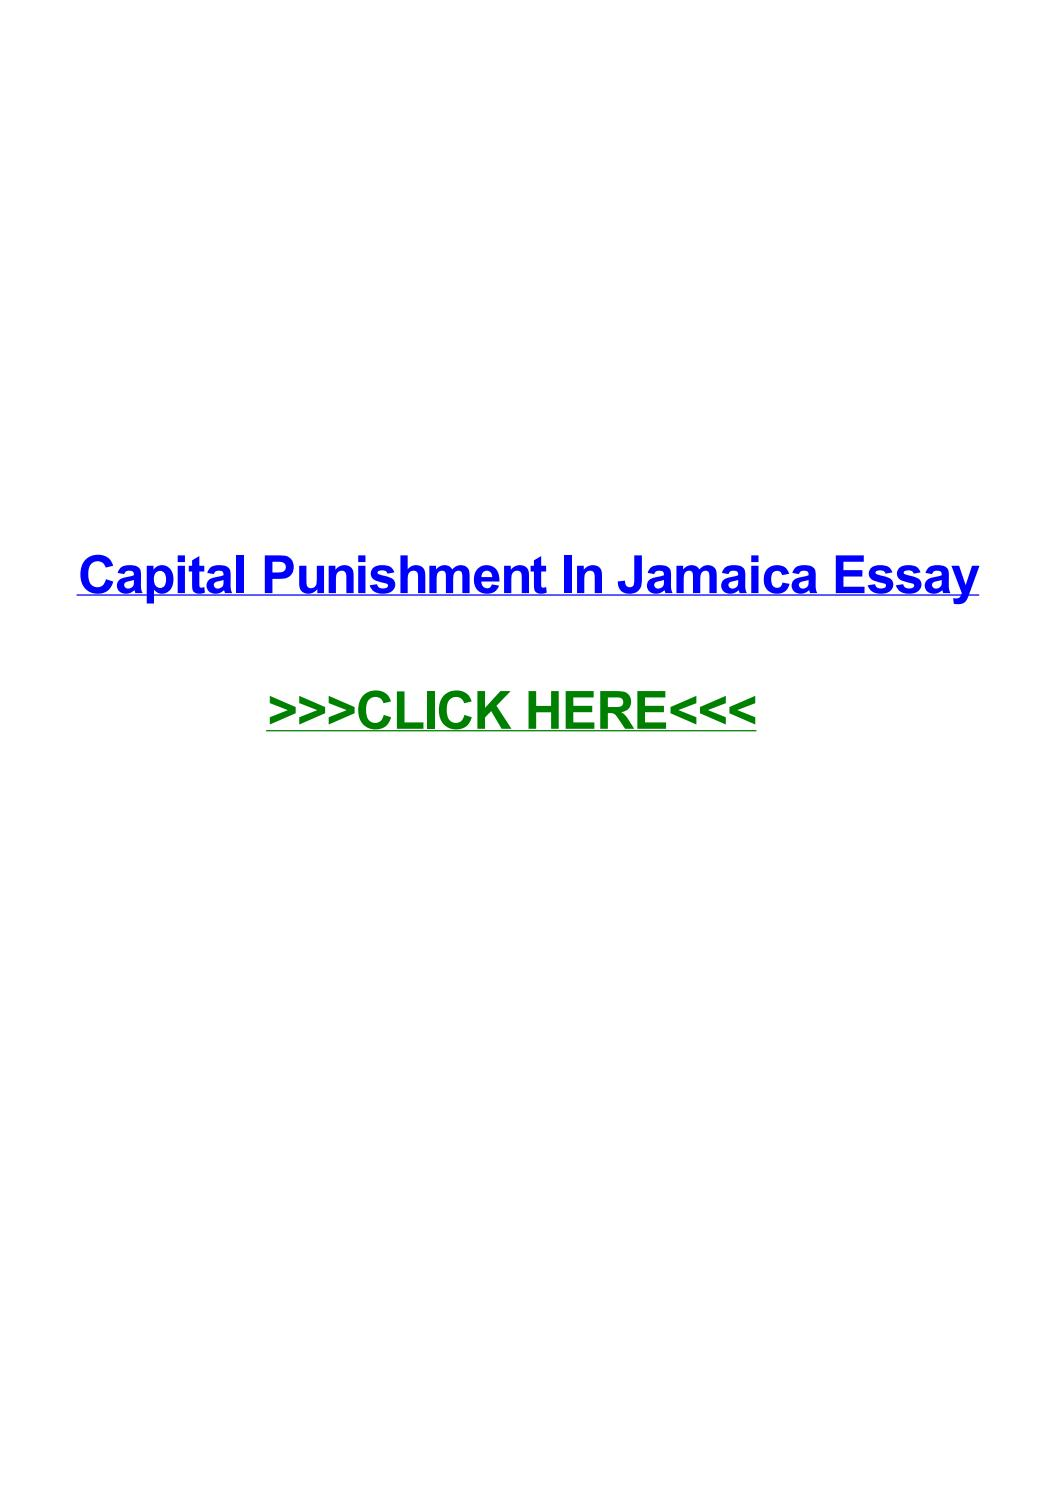 023 Page 1 Essay Capital Breathtaking Promo Codes Capitalism In The Usa 1900 To 1940 New Deal Reviews Full